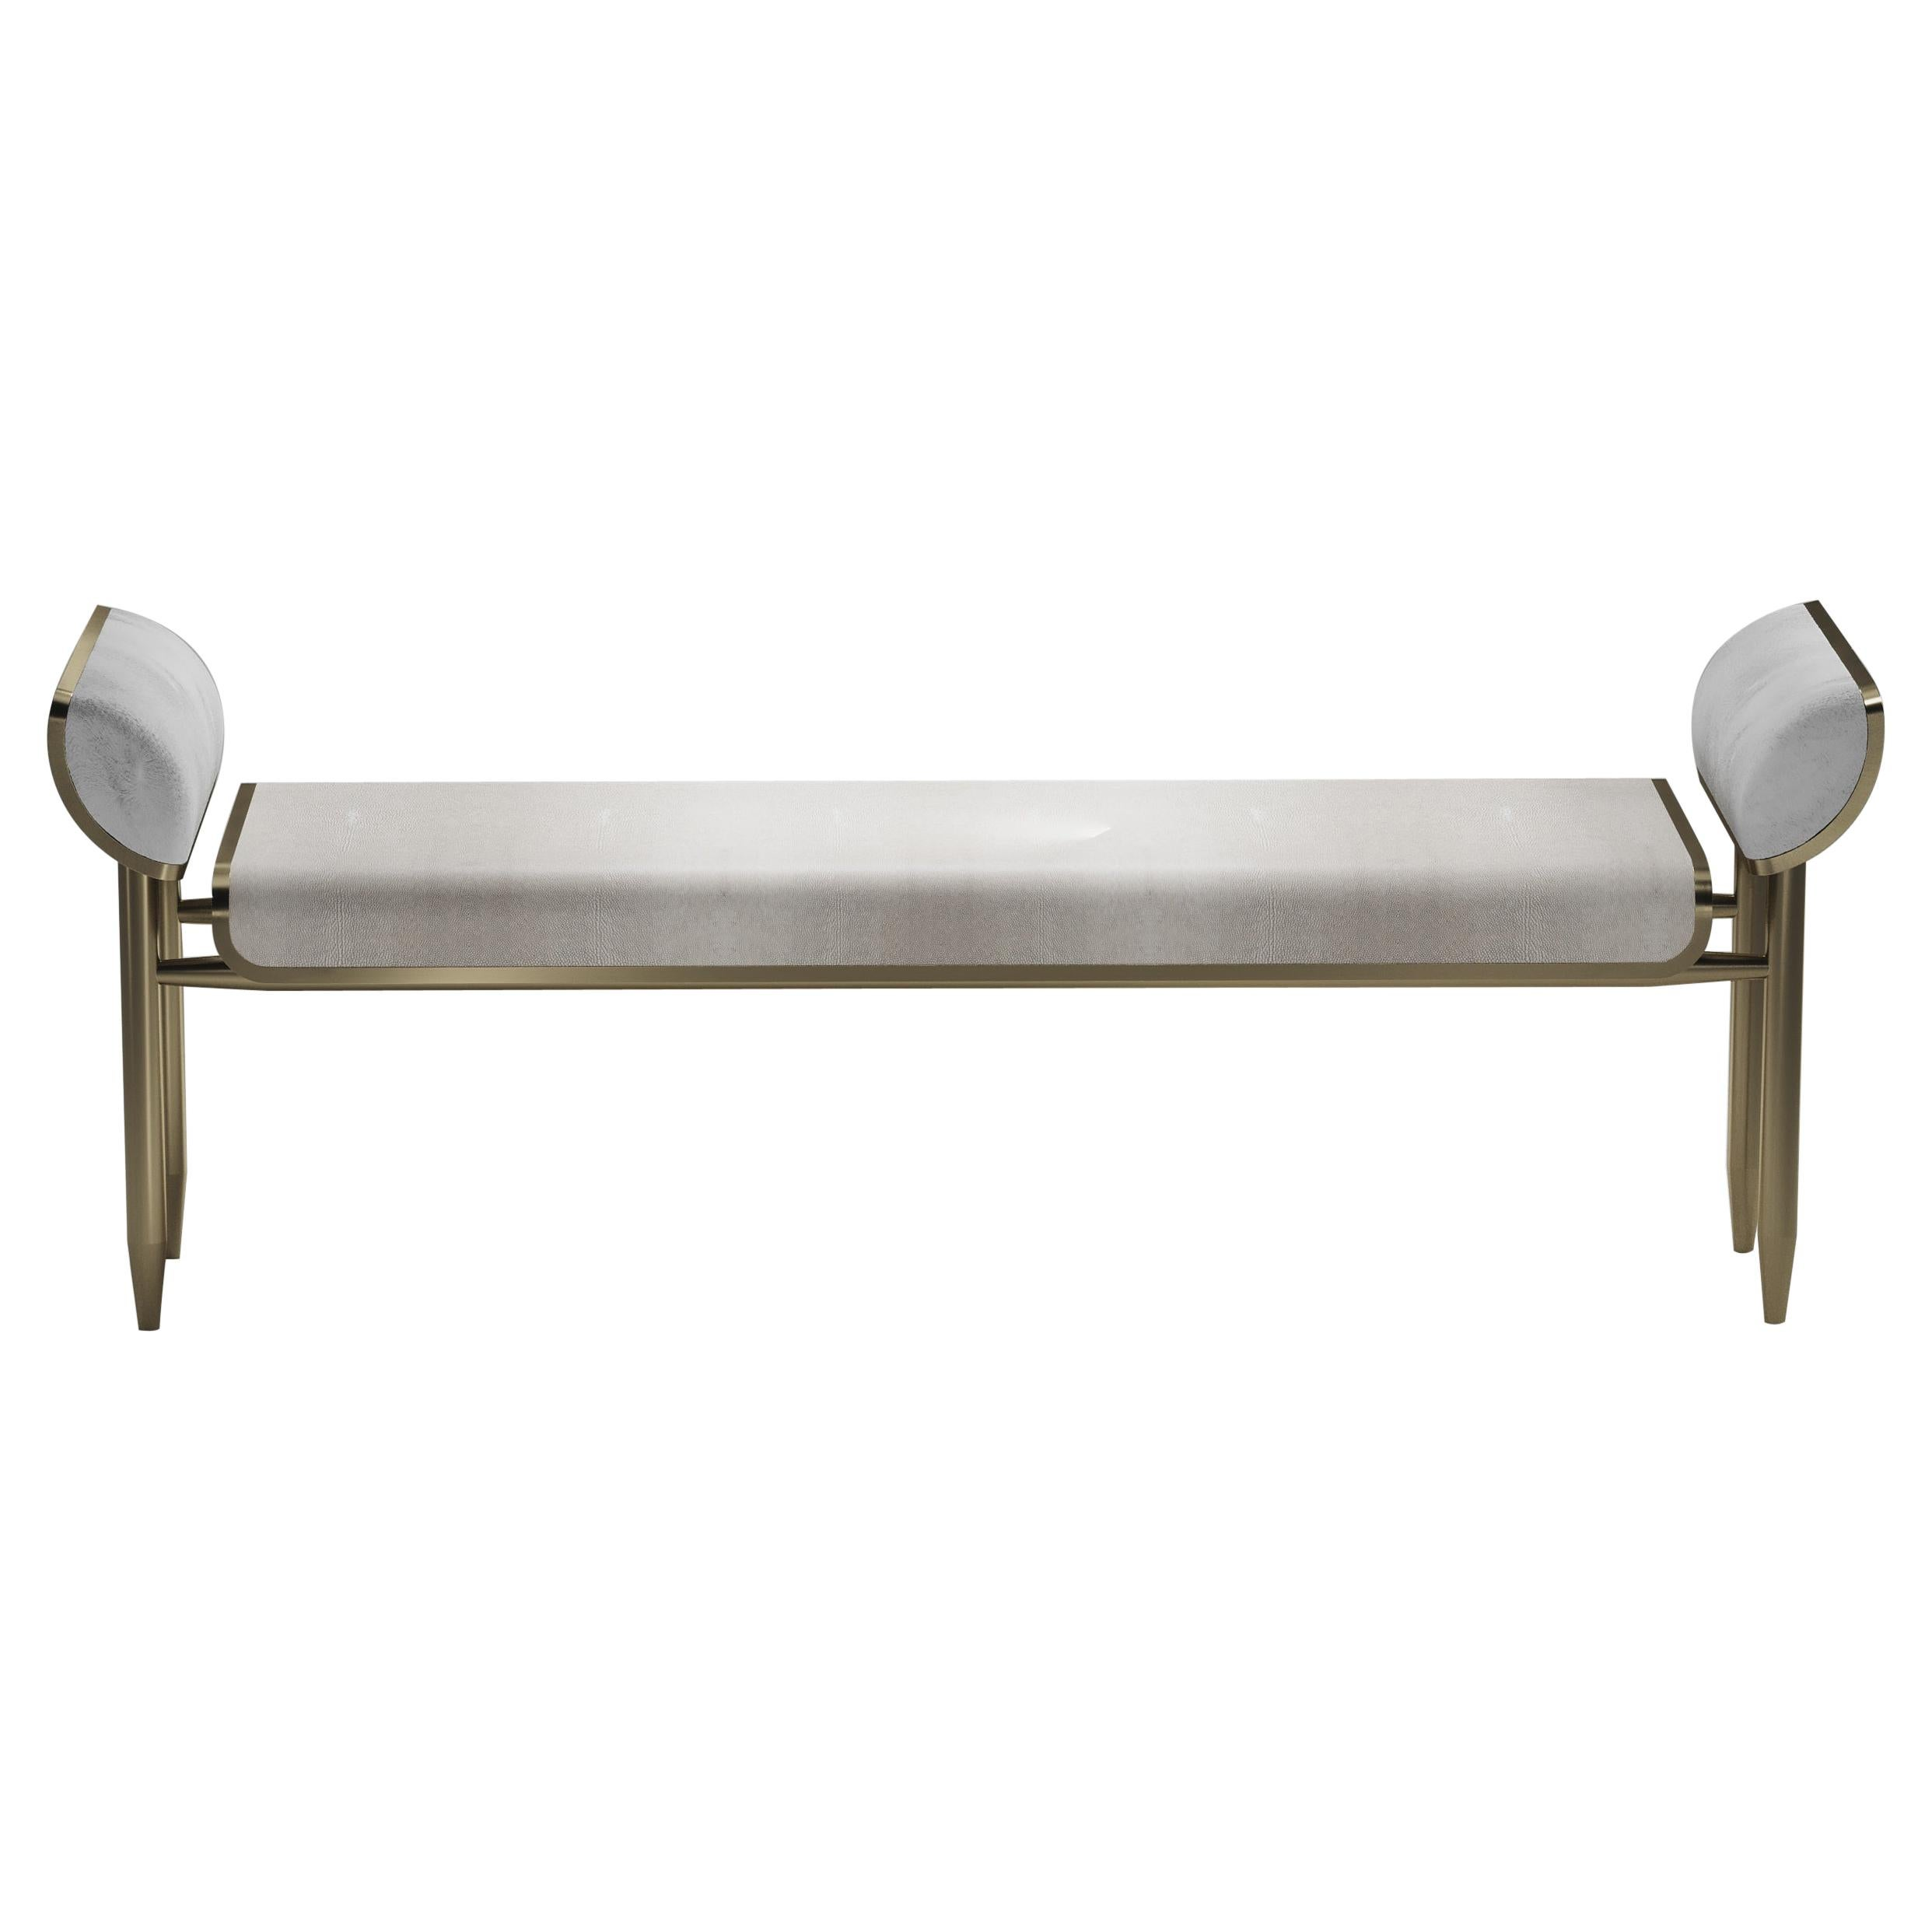 Shagreen Bench with Bronze-Patina Brass and Fur Upholstery by Kifu Paris